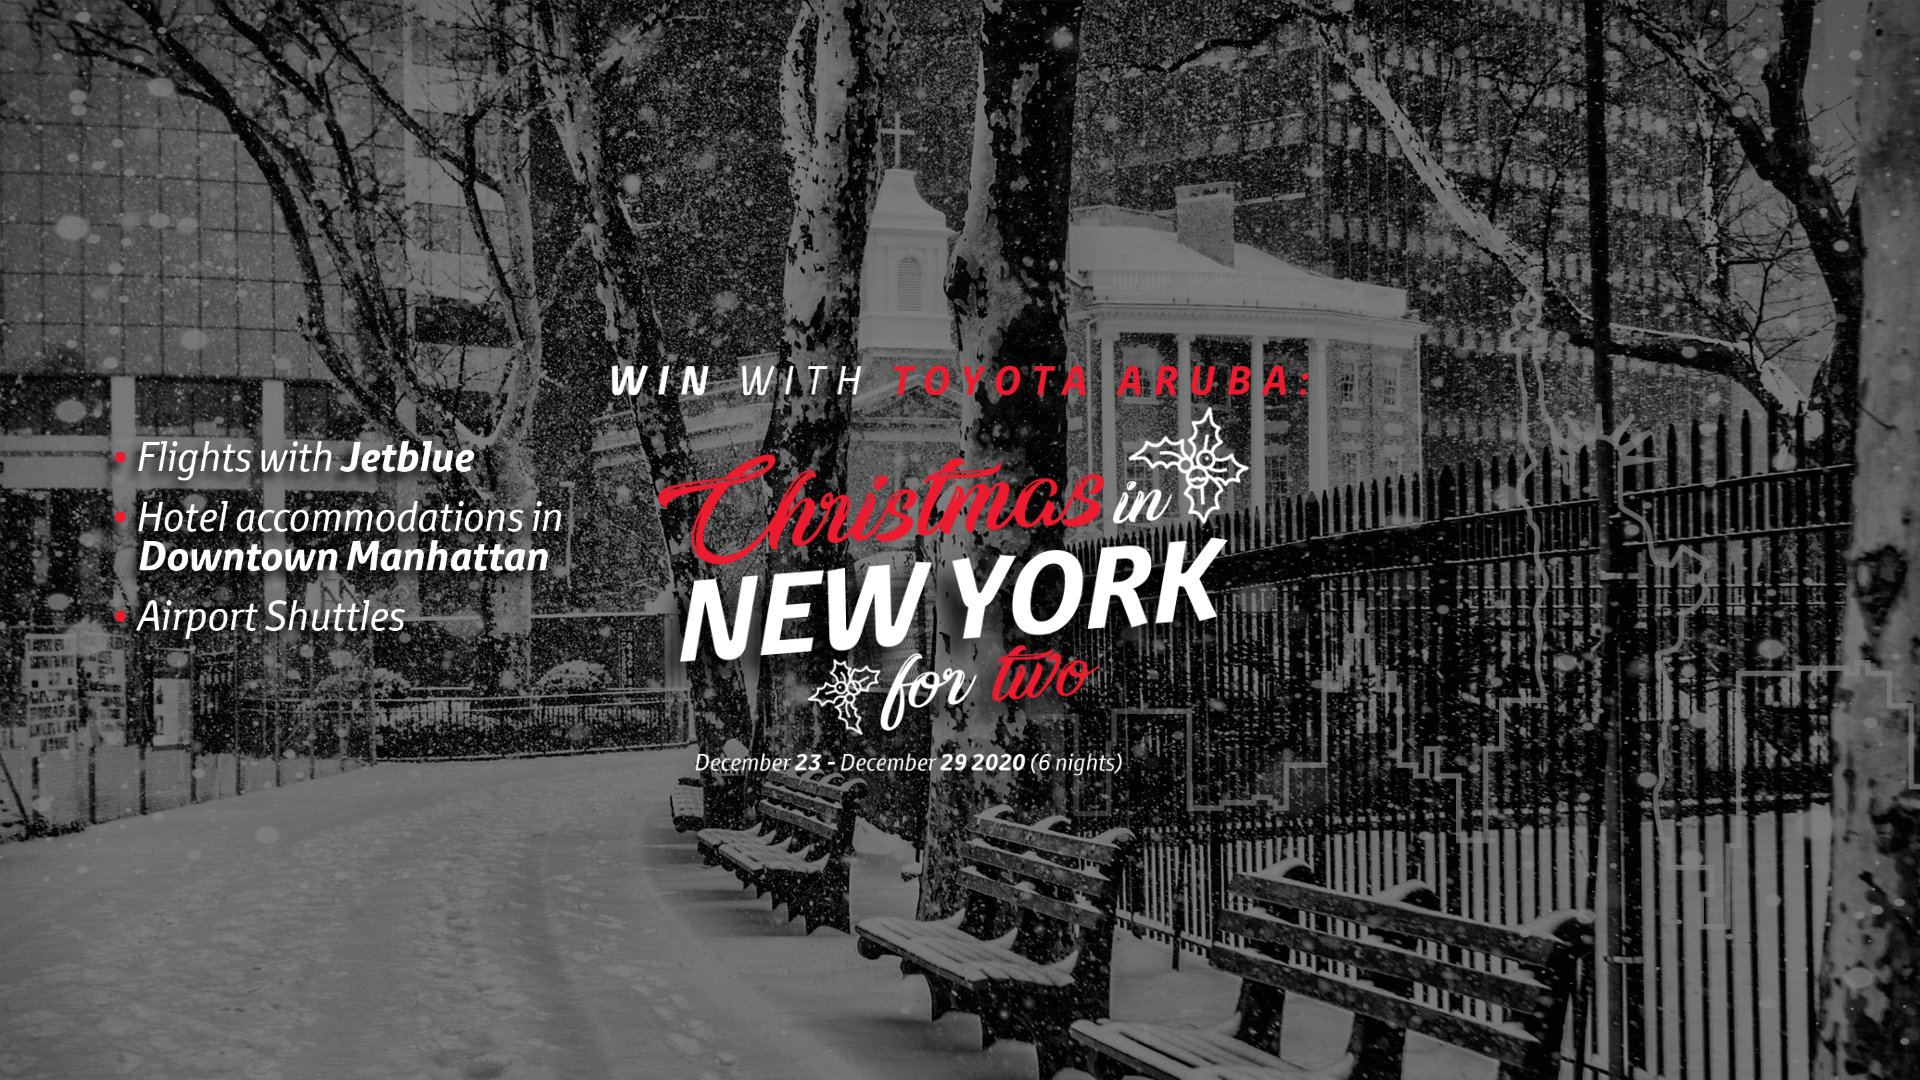 Win Christmas in New York slide